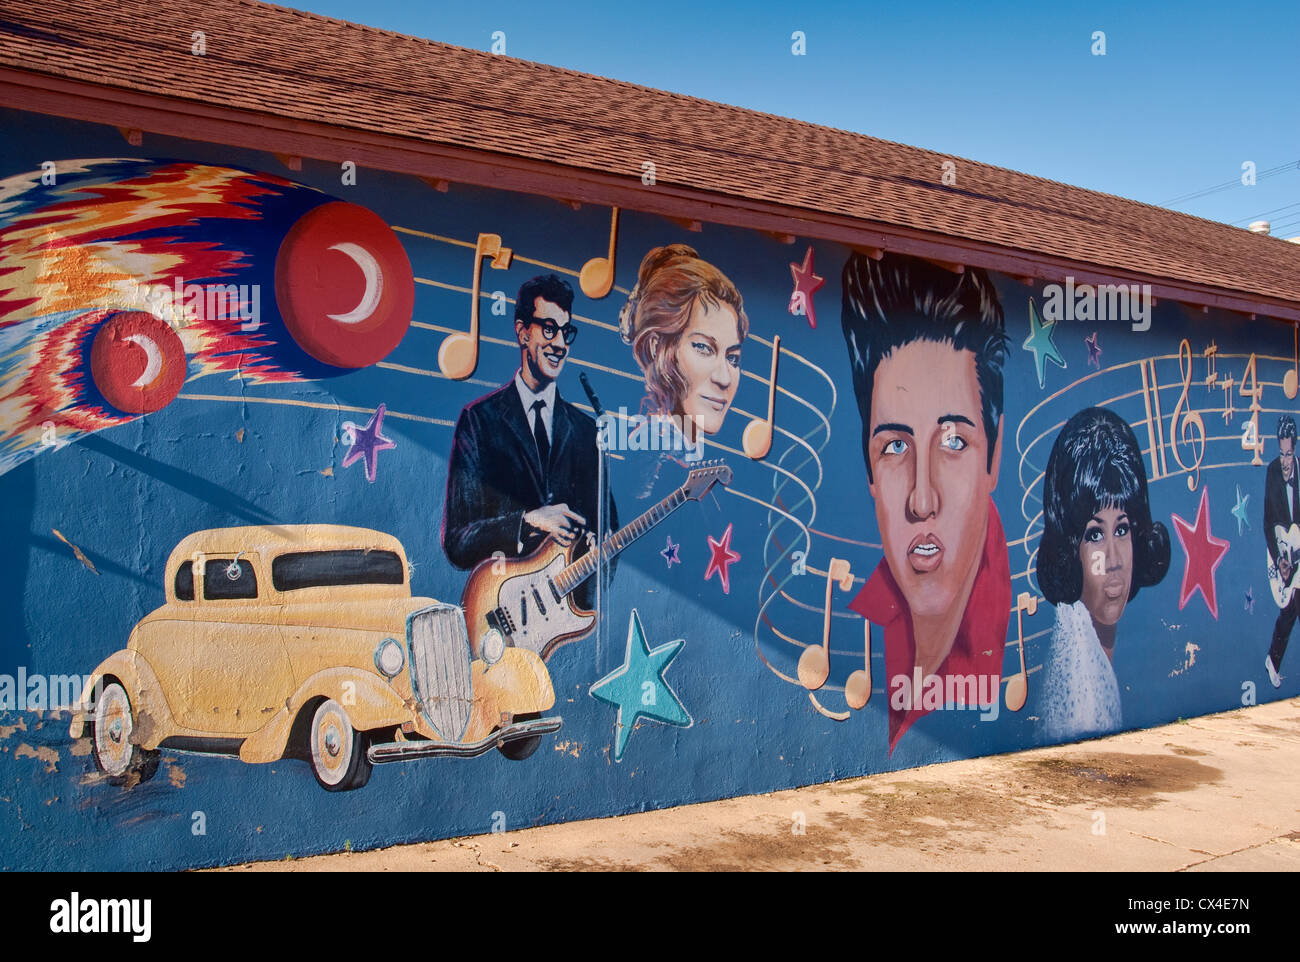 Elvis Presley, Buddy Holly, Aretha Franklin and other 1950's rock'n'roll stars in mural in Clovis, New - Stock Image